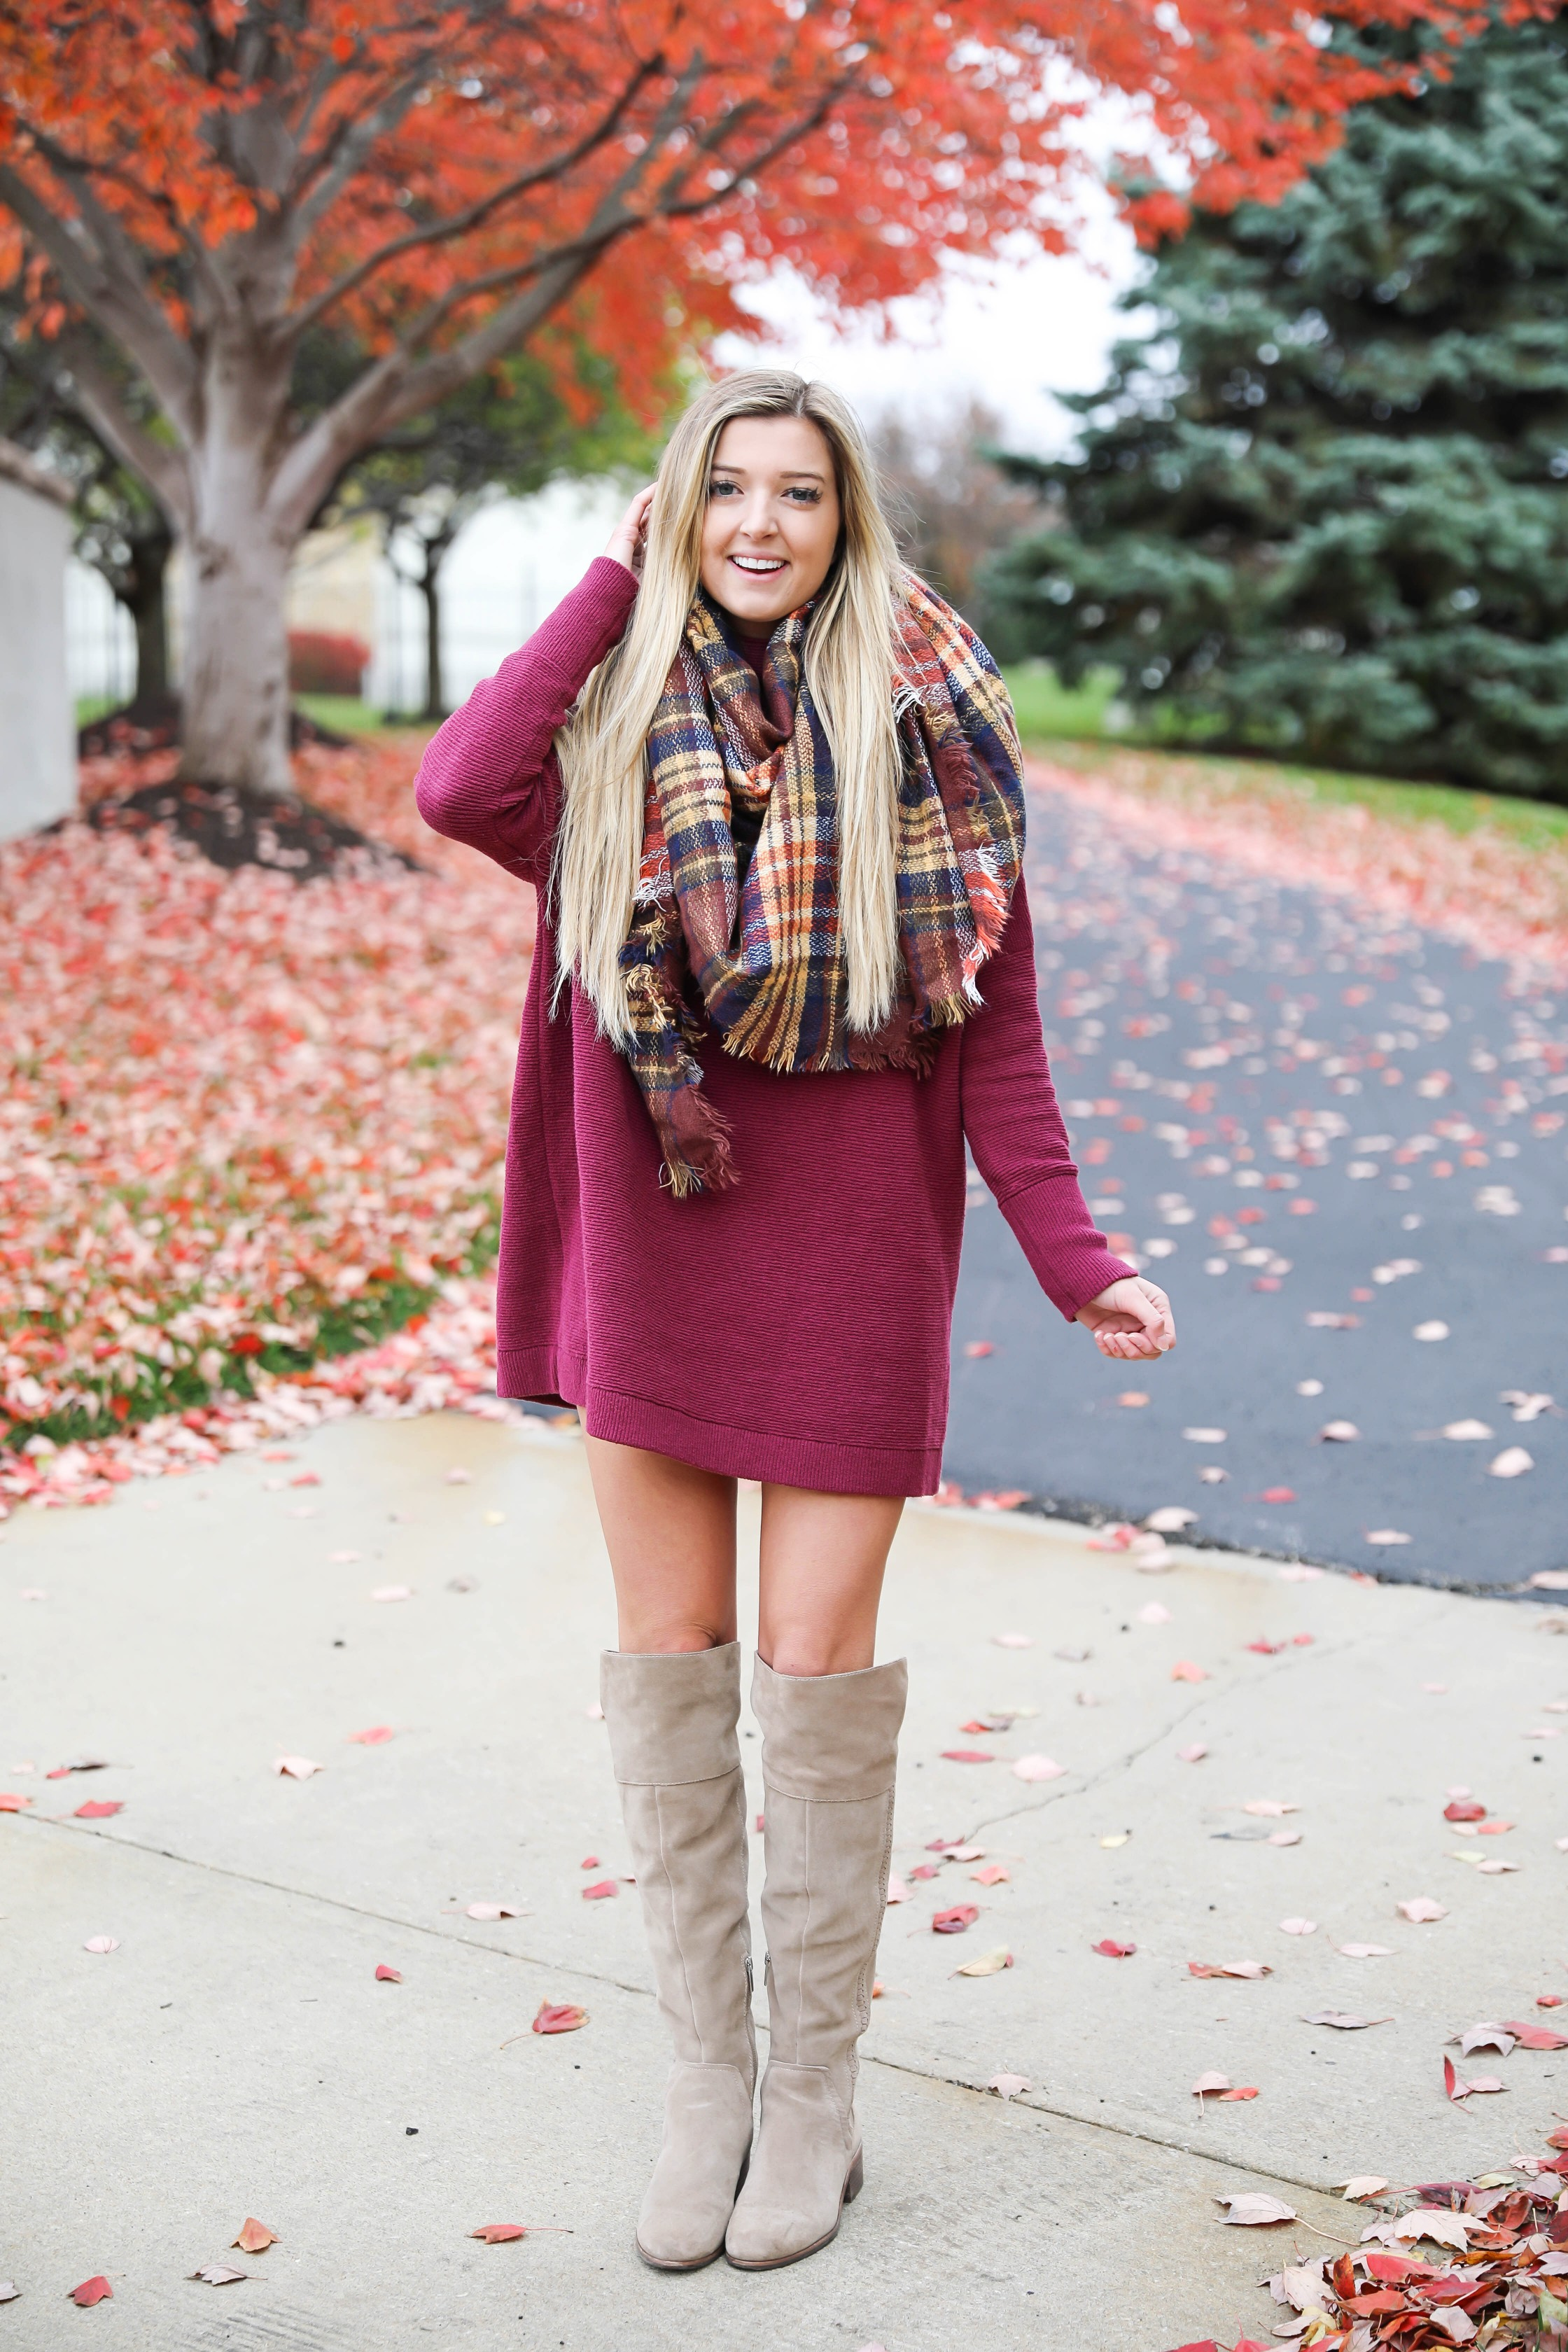 Burgundy sweater dress paired with a cute plaid scarf! Such a cute thanksgiving outfit! This cute fall dress is by free people and this plaid scarf look so cute with it! I paired it with my suede vince camuto over the knee boots! Details on fashion blog daily dose of charm by lauren lindmark